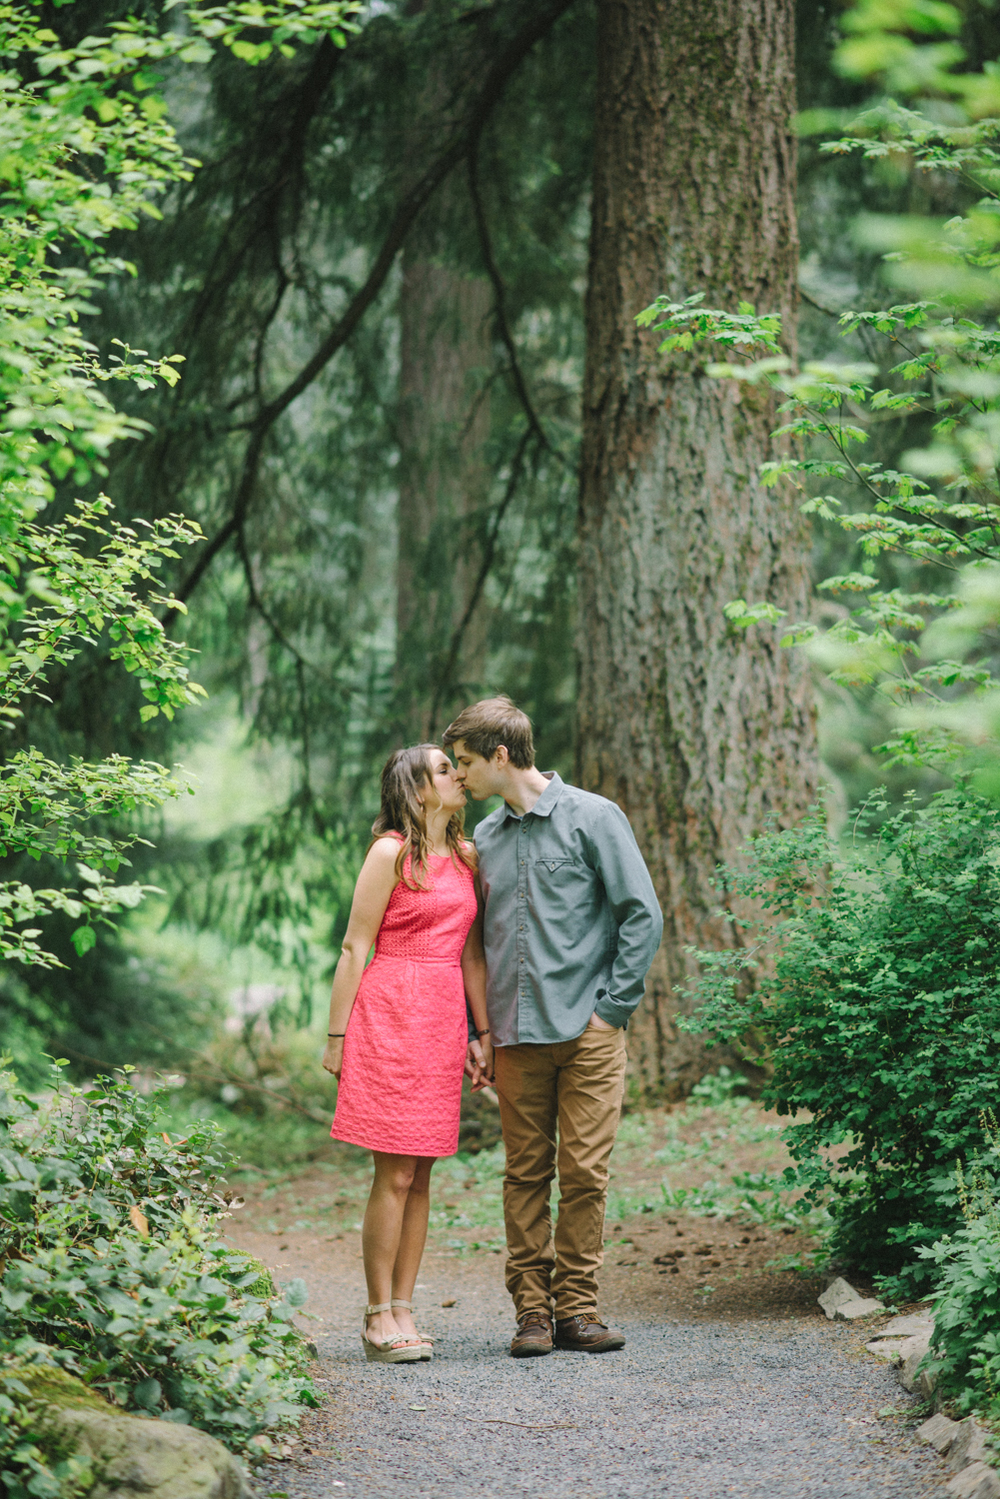 Portland-oregon-romantic-engagement-session-photographer-hoyt-arboretum-washington-park-shelley-marie-photography-forest-natural-woodland-kiss-17